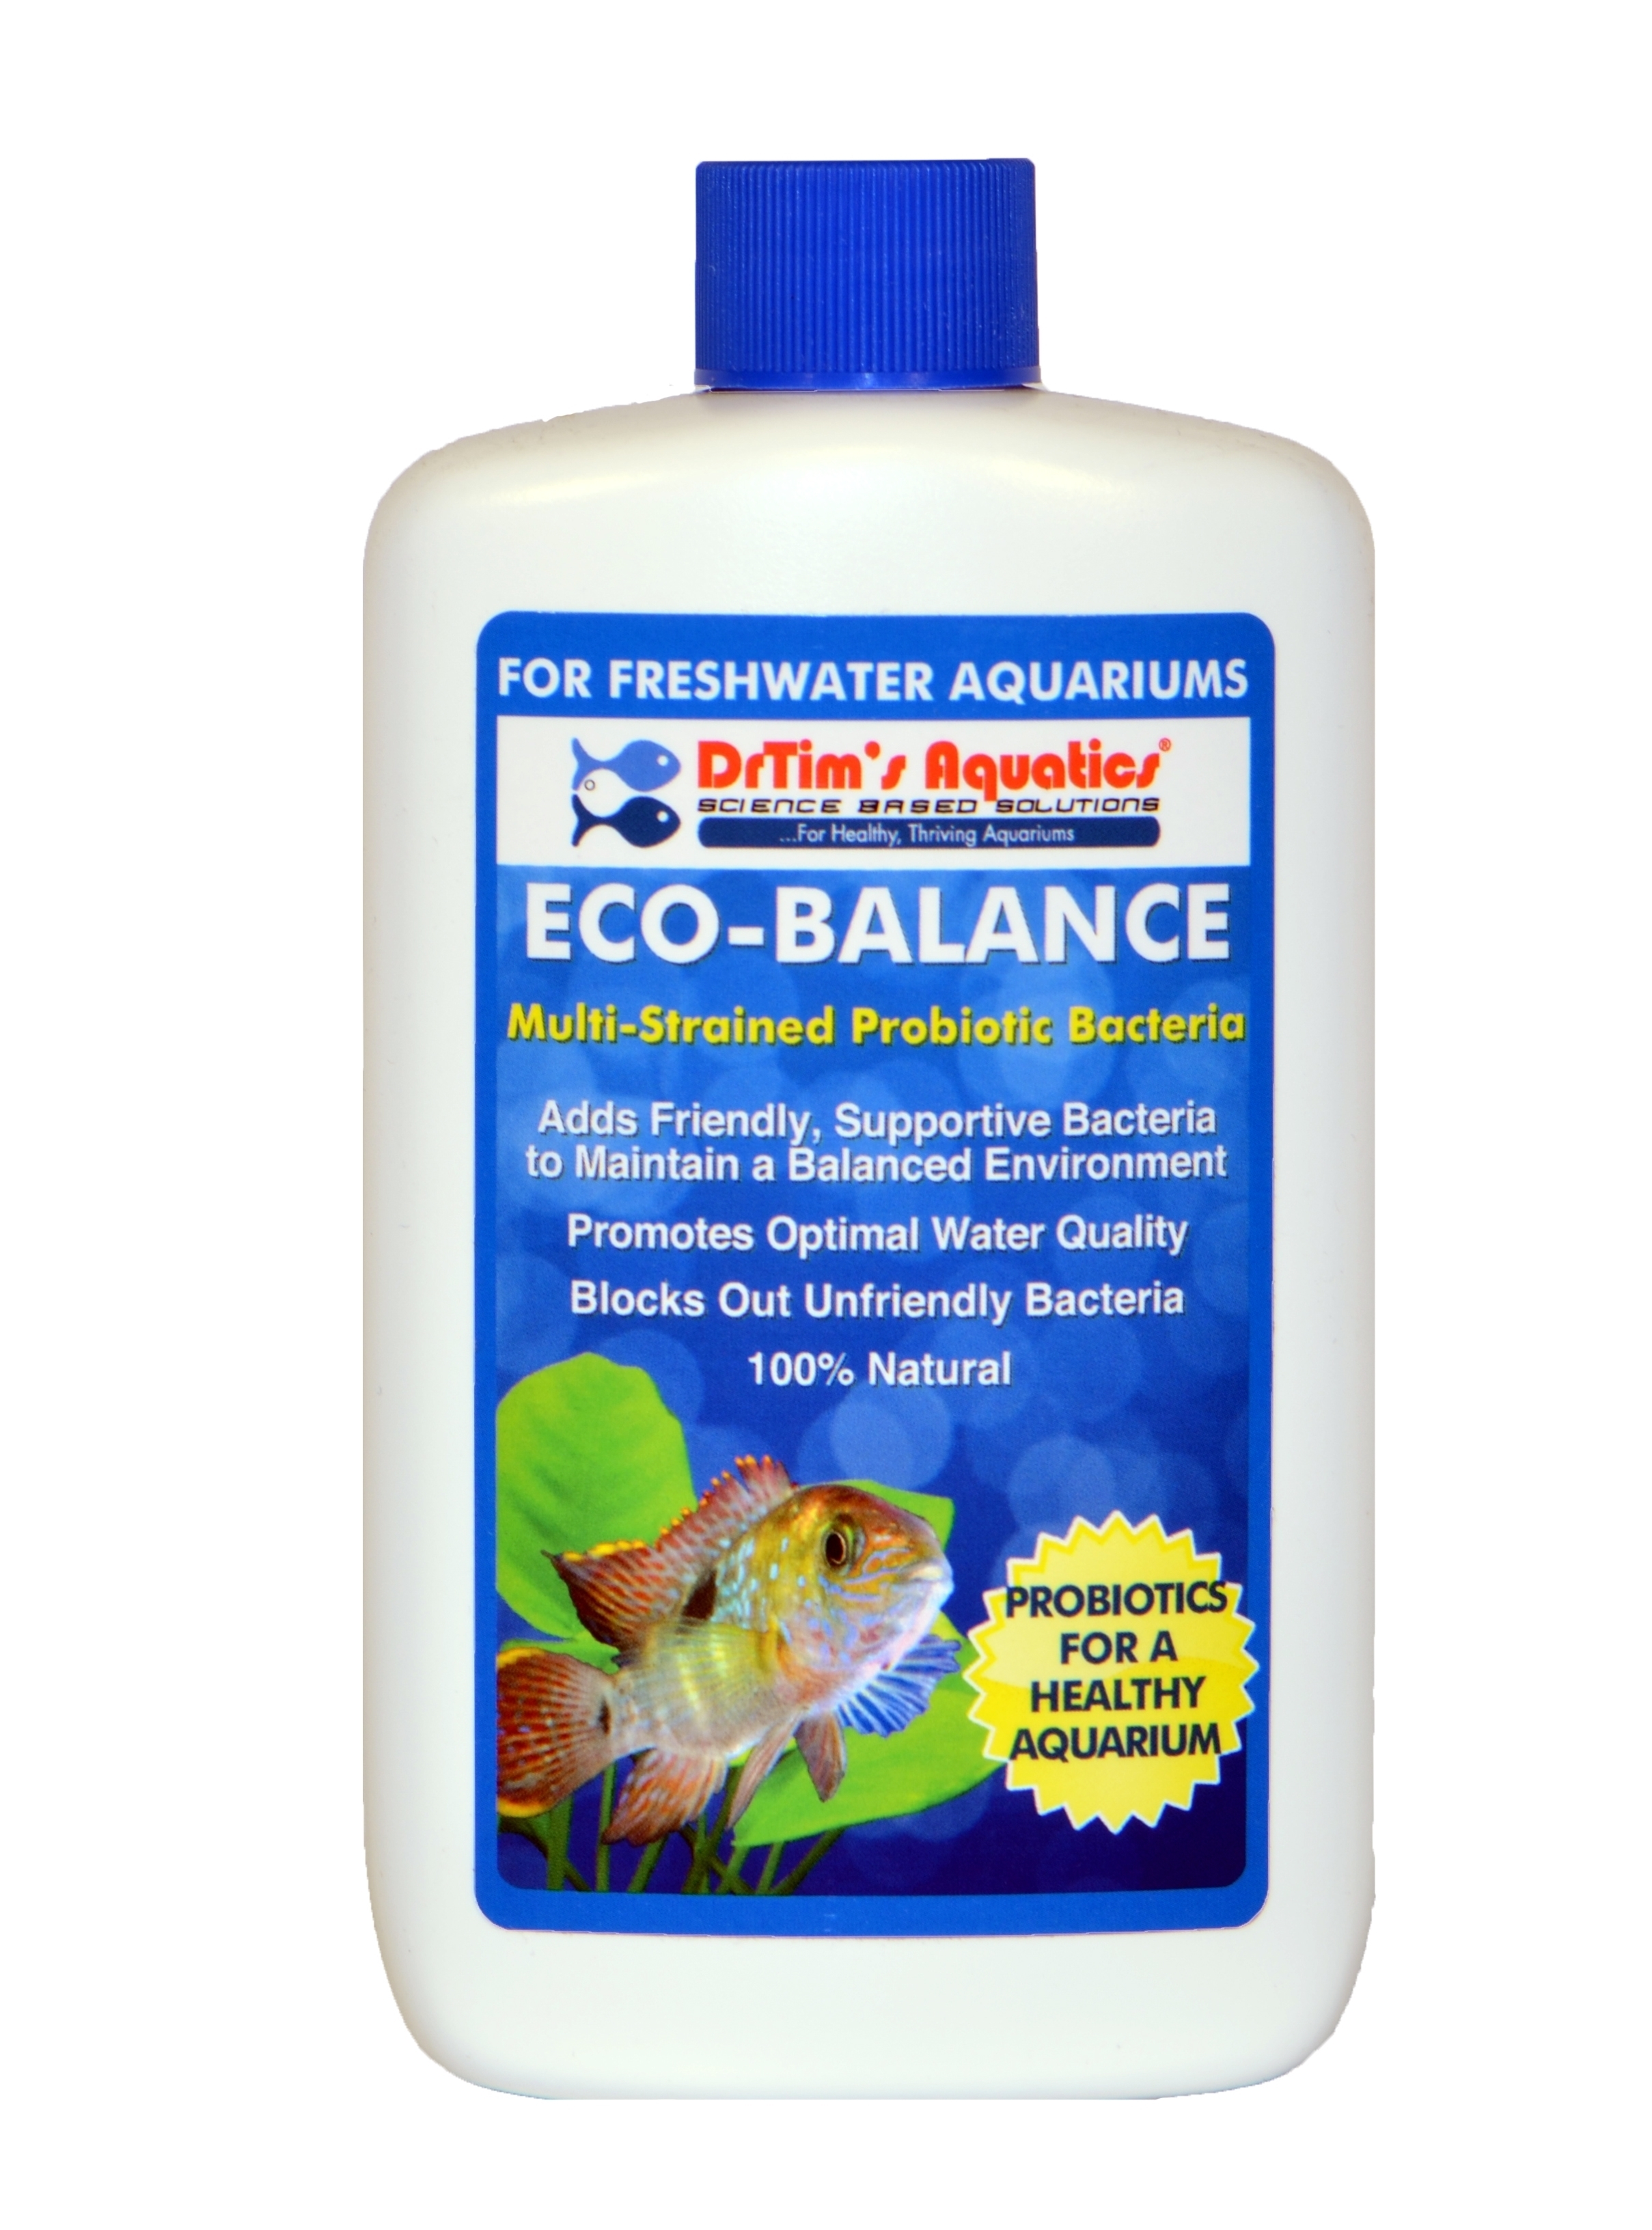 Eco Balance Probiotic Bacteria For Freshwater Aquaria Dr